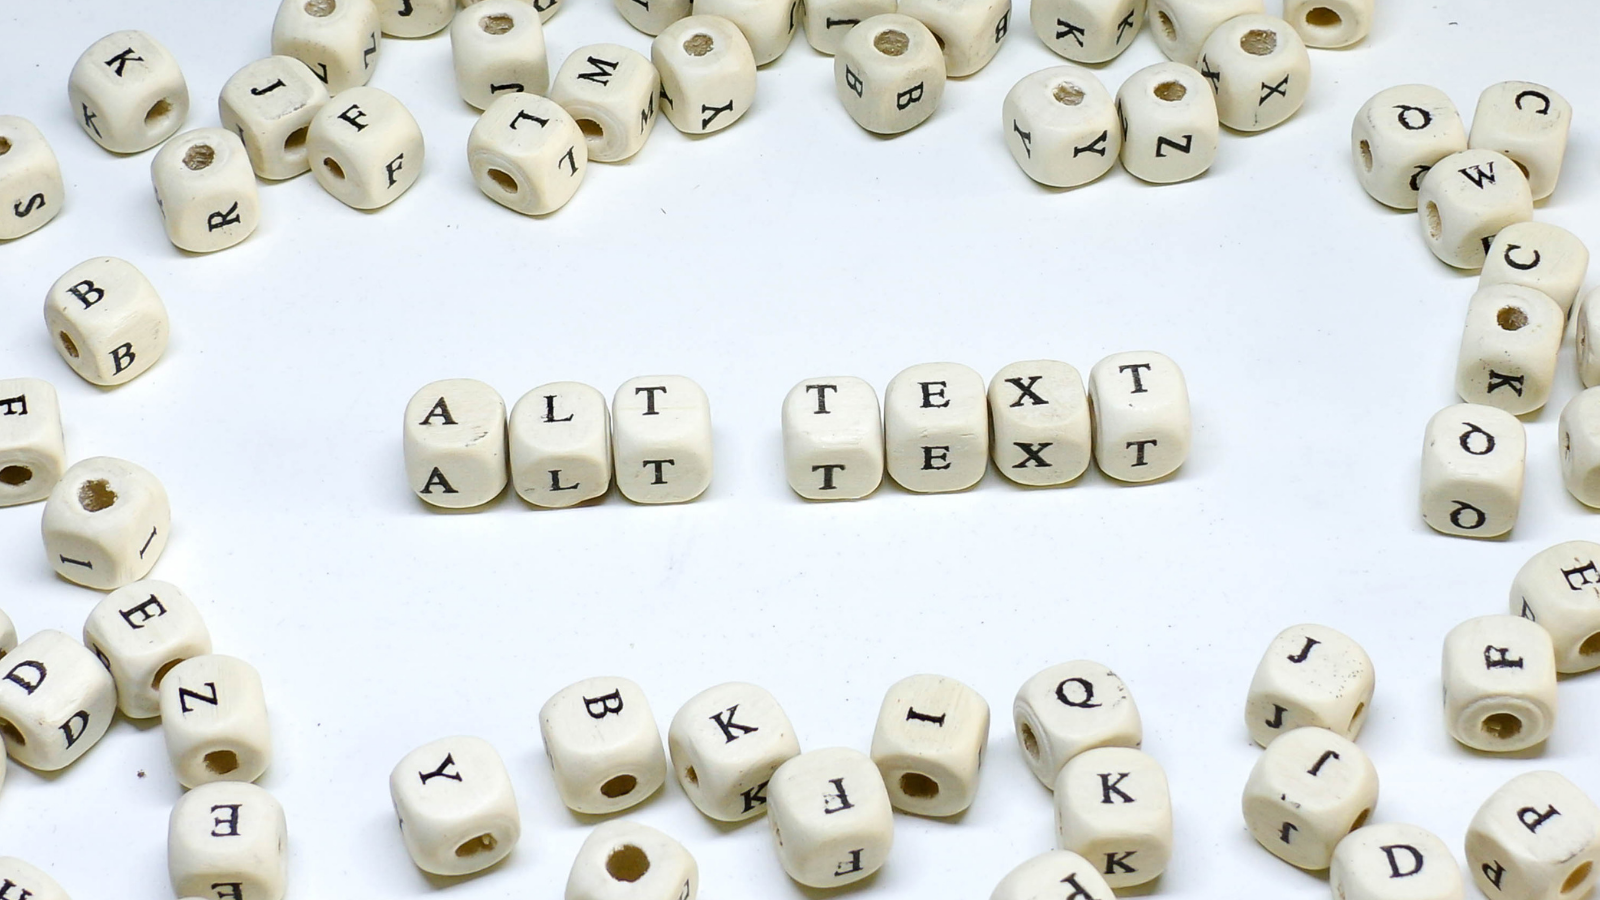 Square letter beads arranged to spell out alt text with other letter beads surrounding the words. Alternative text, or image descriptions, increase accessibility for readers who have visual impairments.